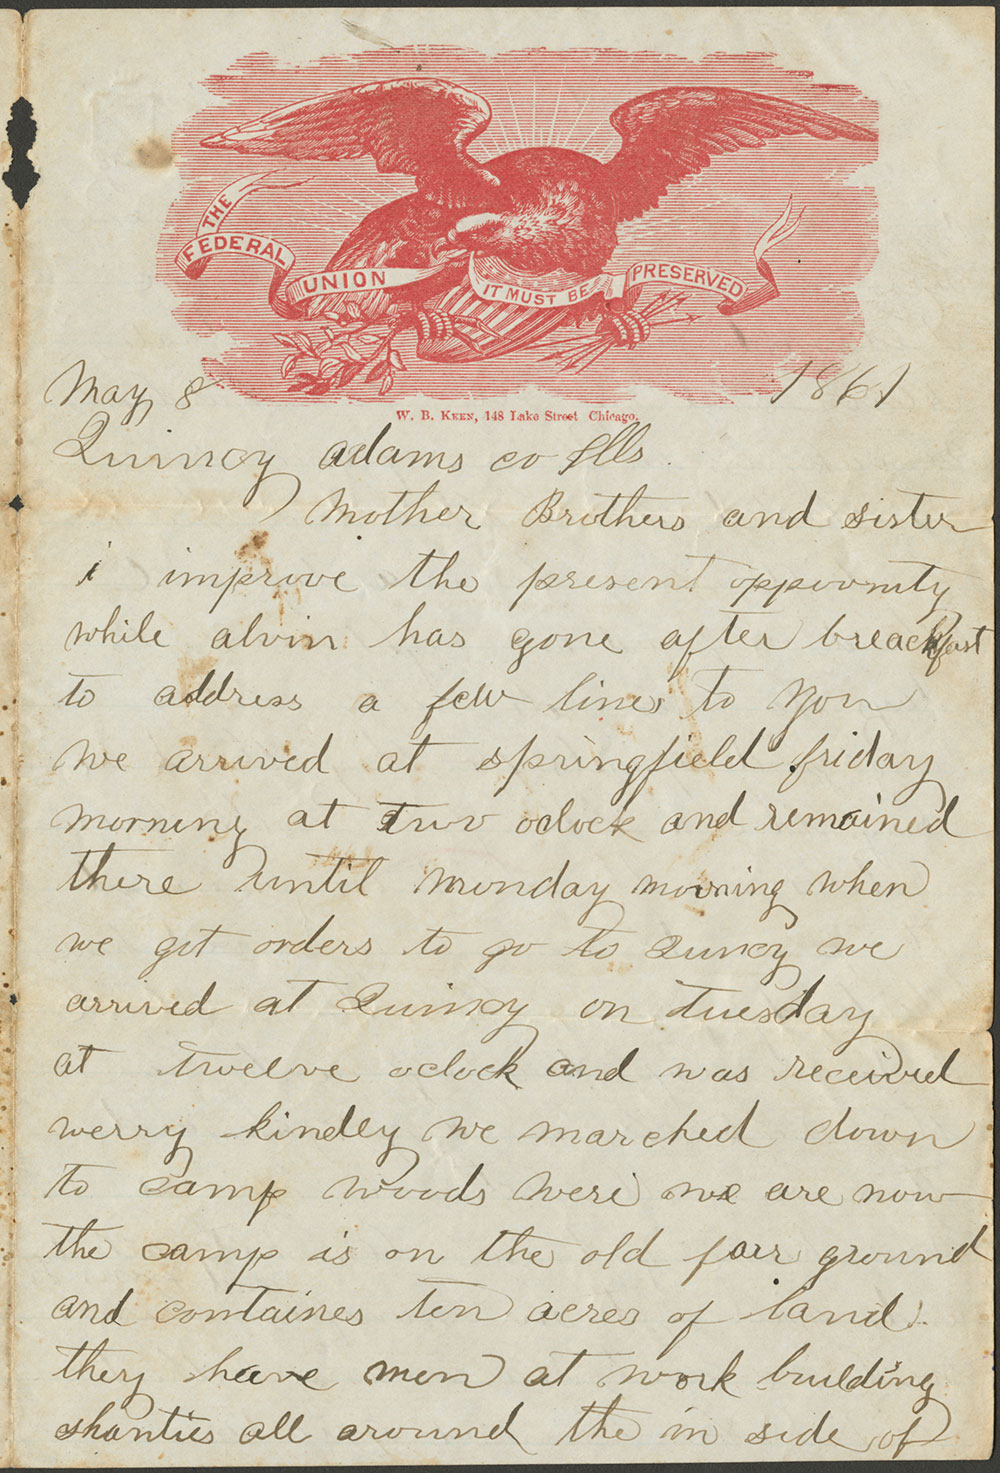 Don Carlos Salisbury letter, 8 May, 1861